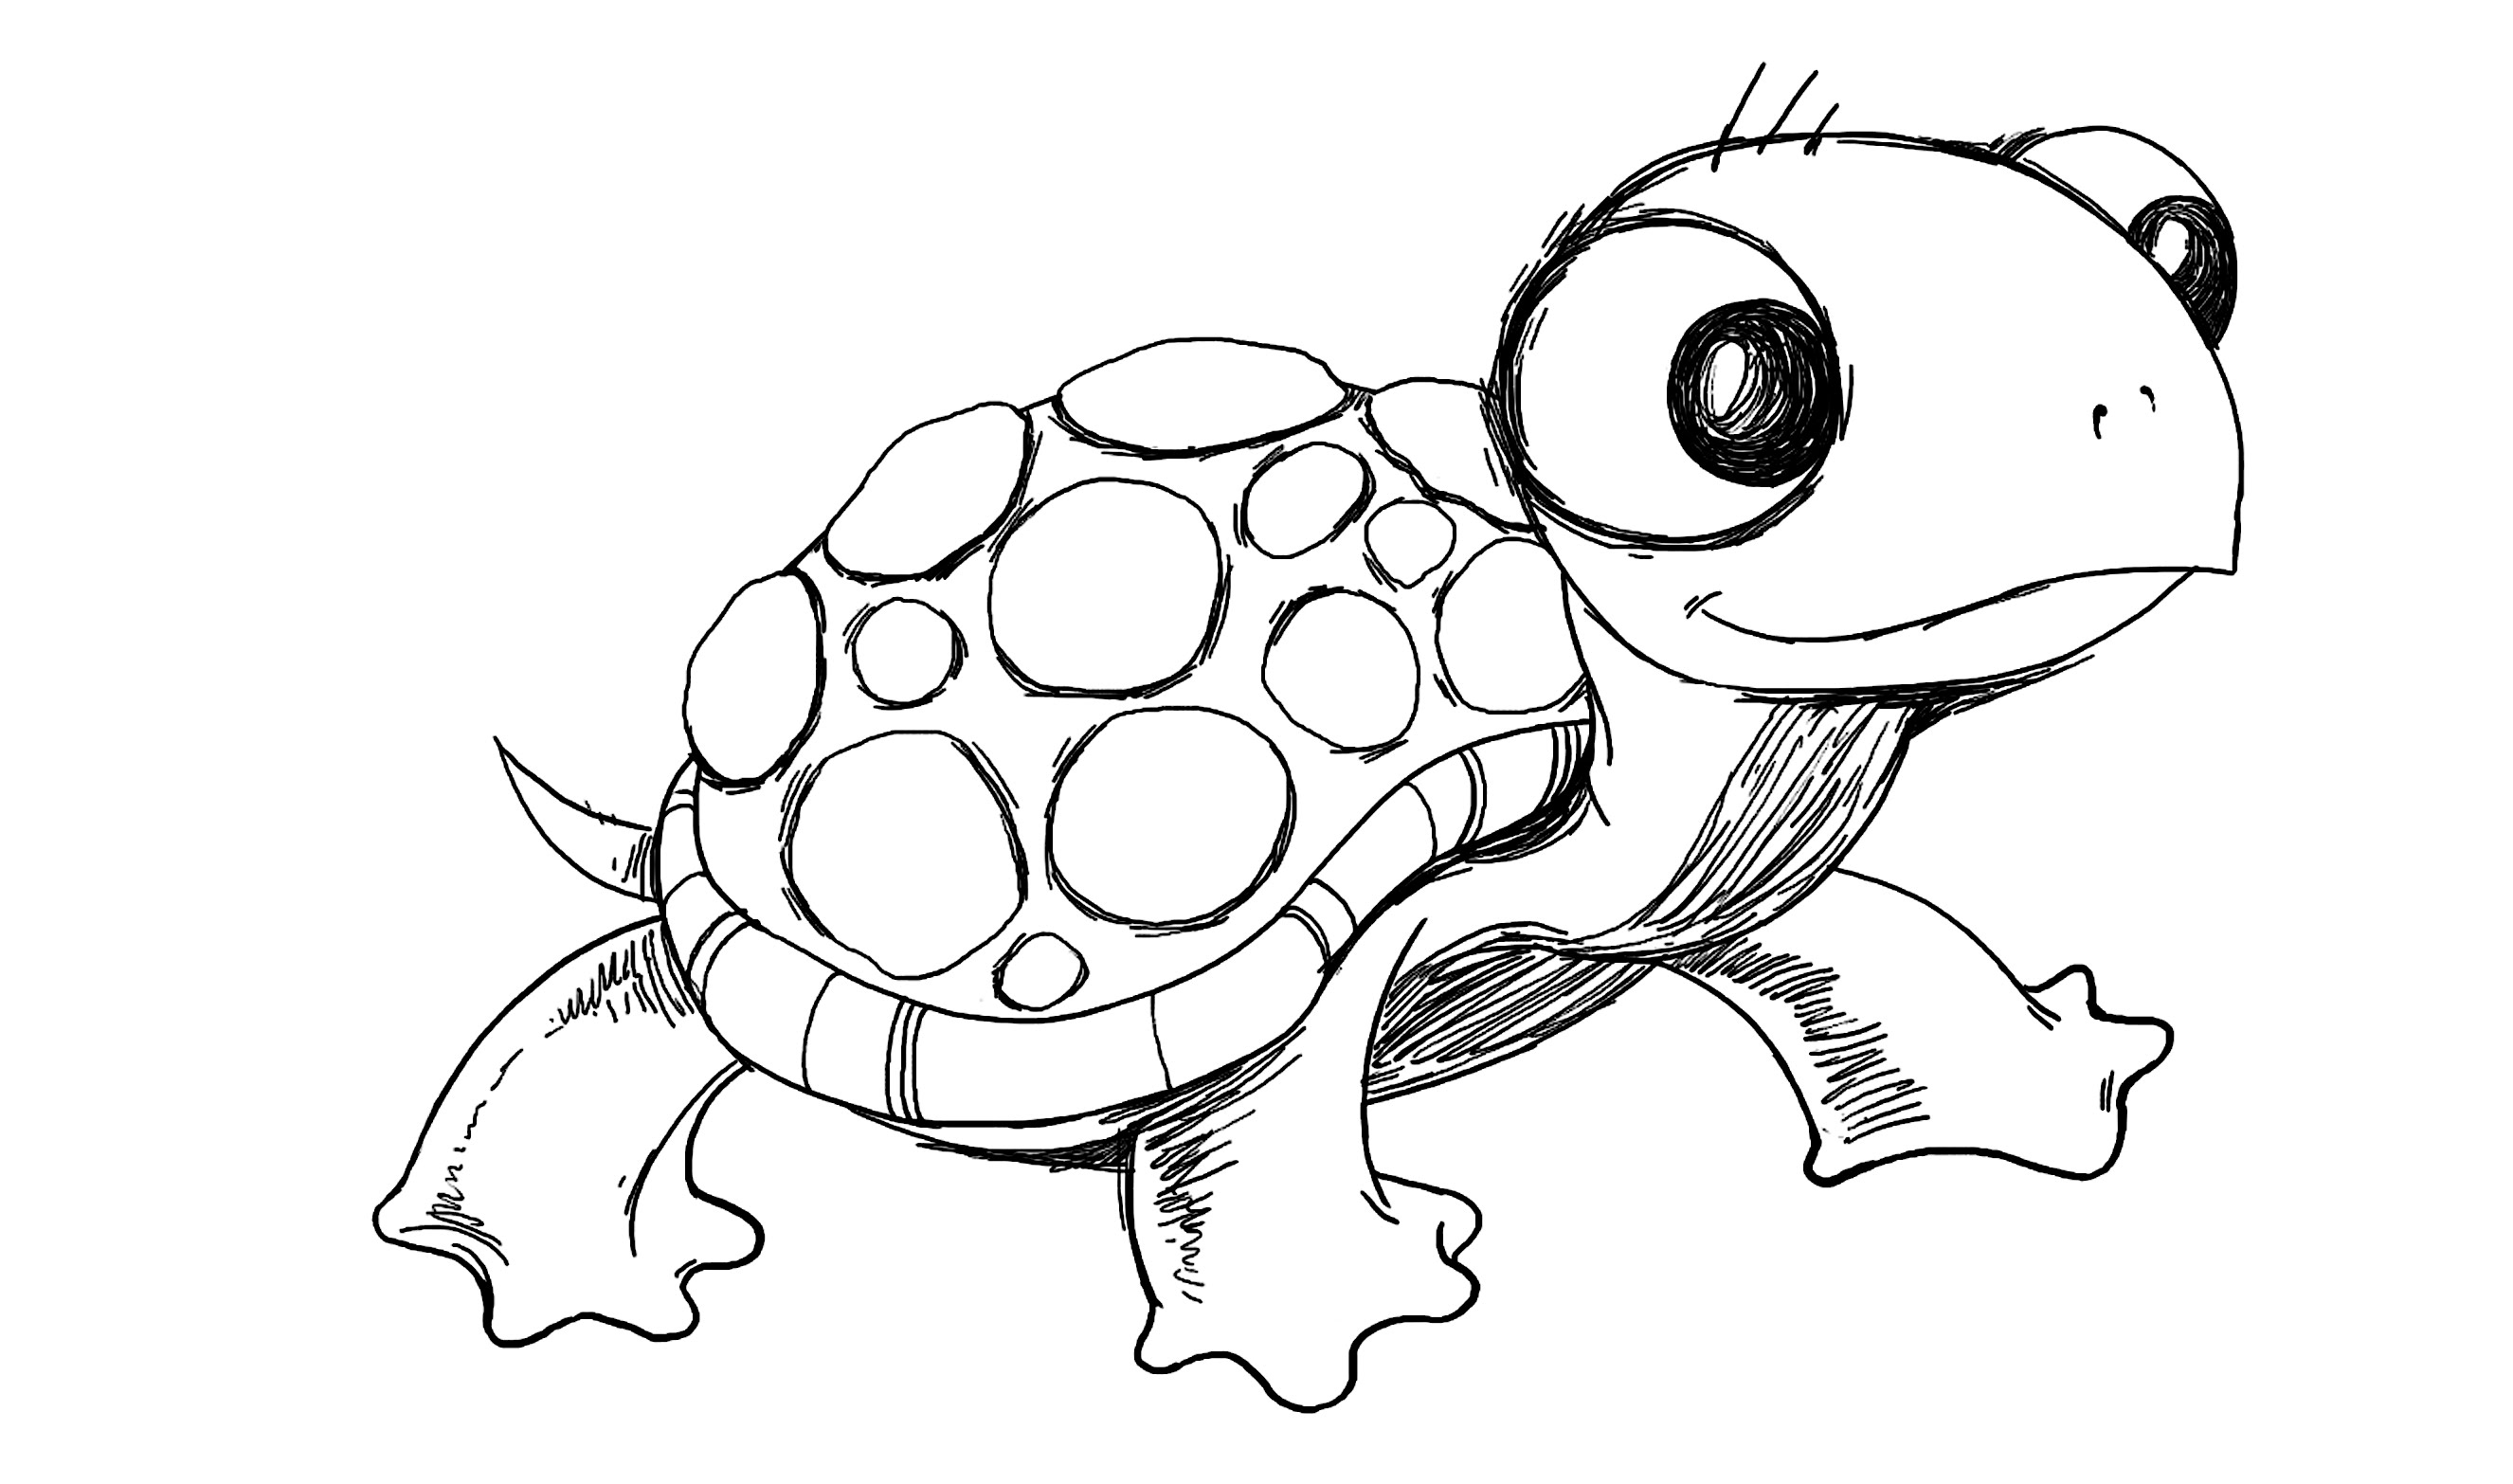 2652x1566 Coloring Pages Turtle Drawings Il 340x270 1256545459 9lrt